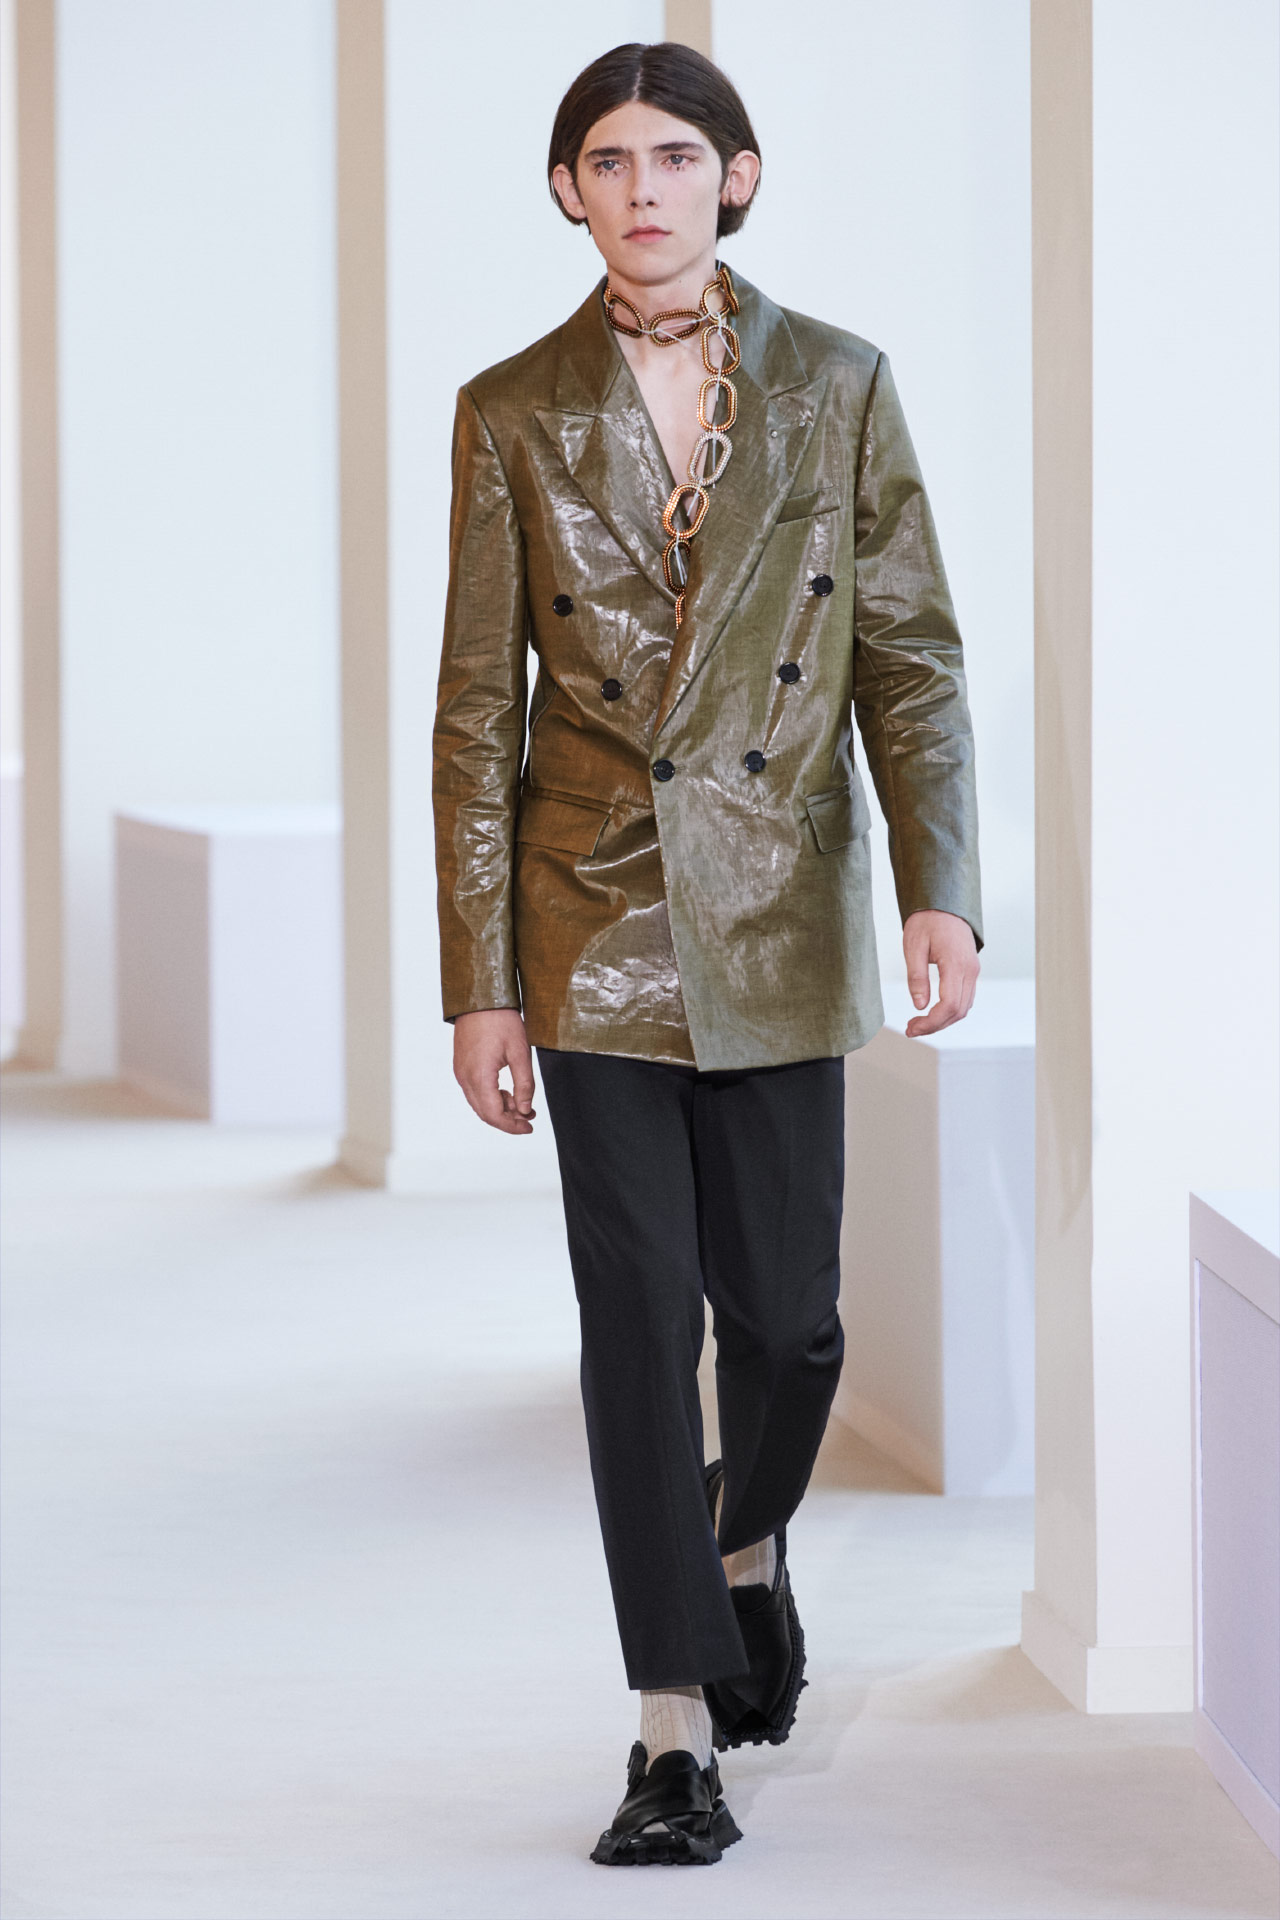 Look Spring/Summer, image 31